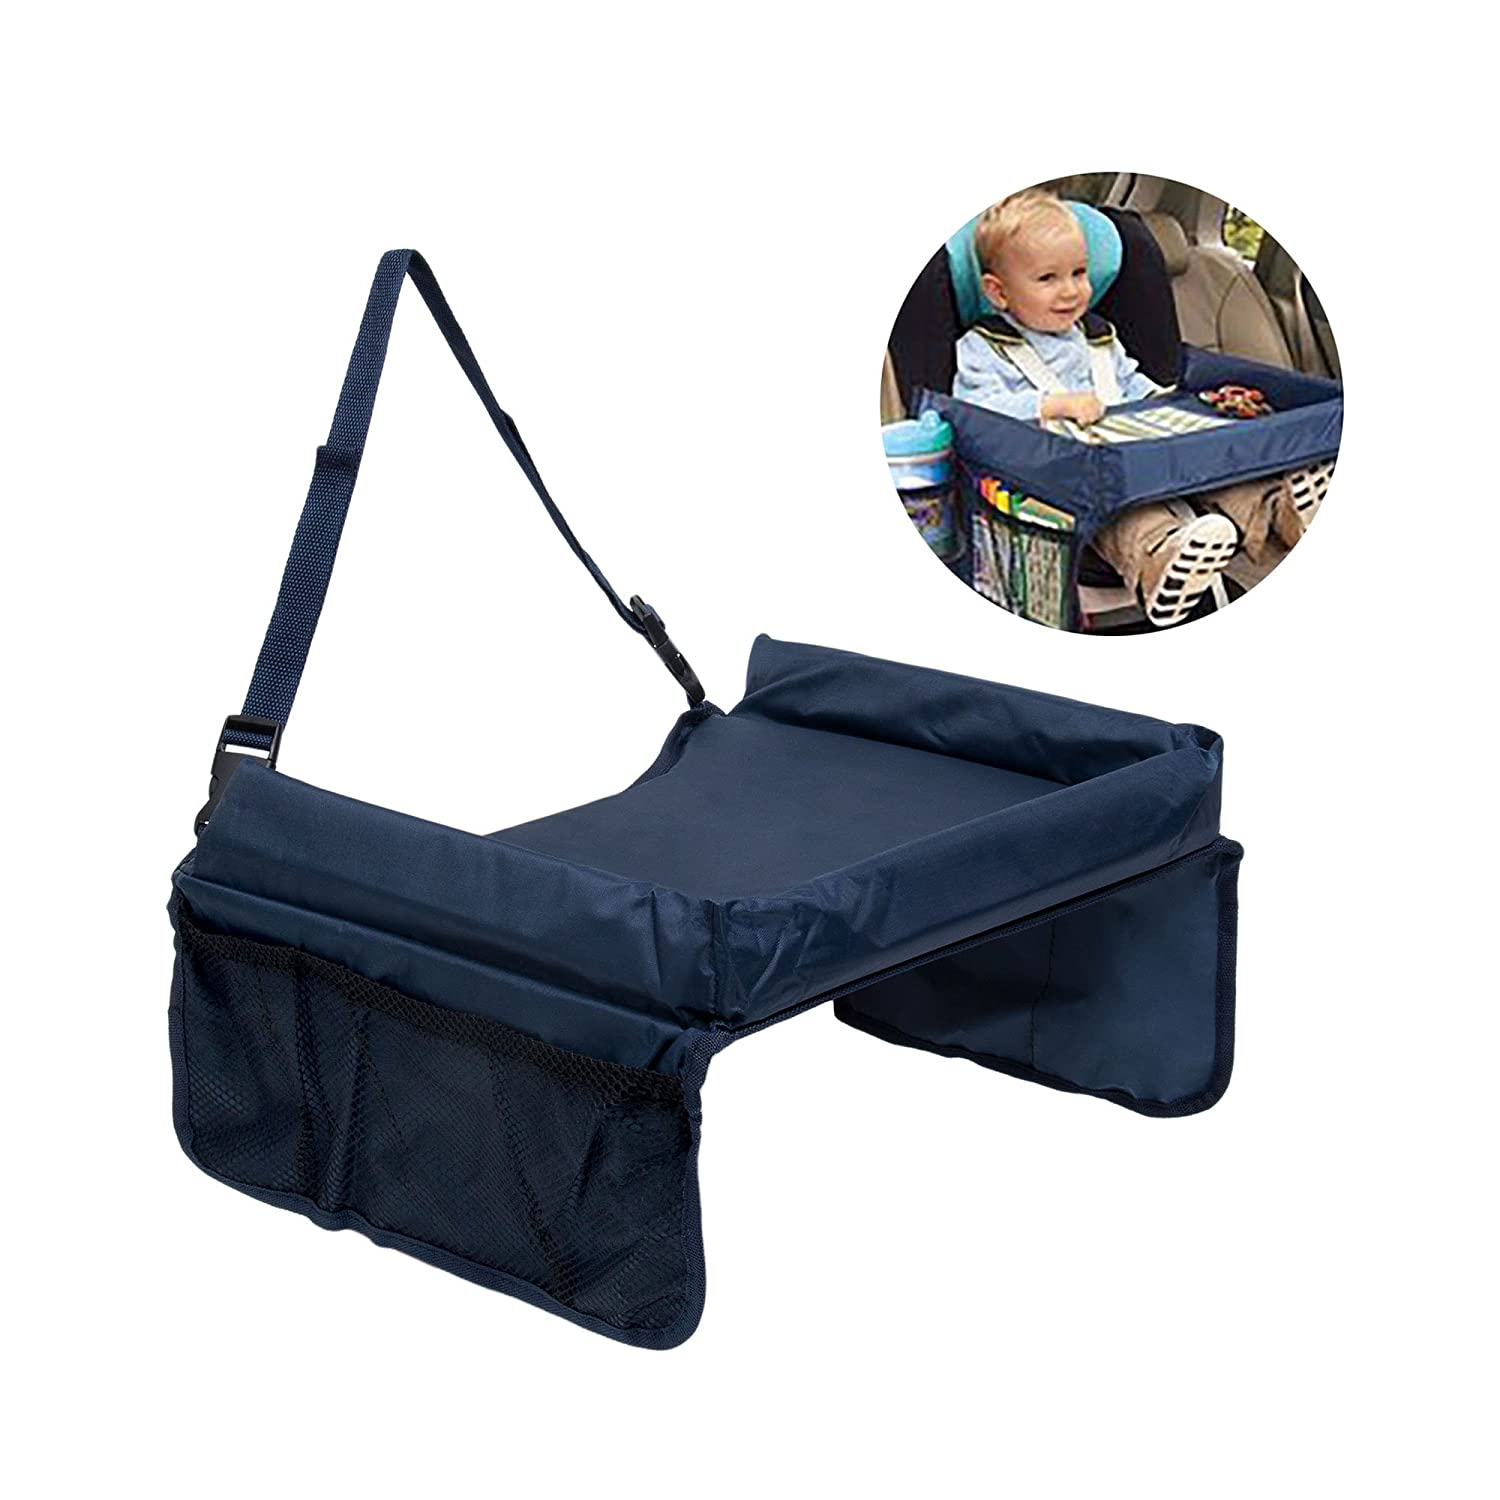 Travel Games Tray for Children's Car Seat| Baby's Travel Tray For the Car| Folding Tray for Car | Baby's Car Seat Accessory Bandeja de viaje